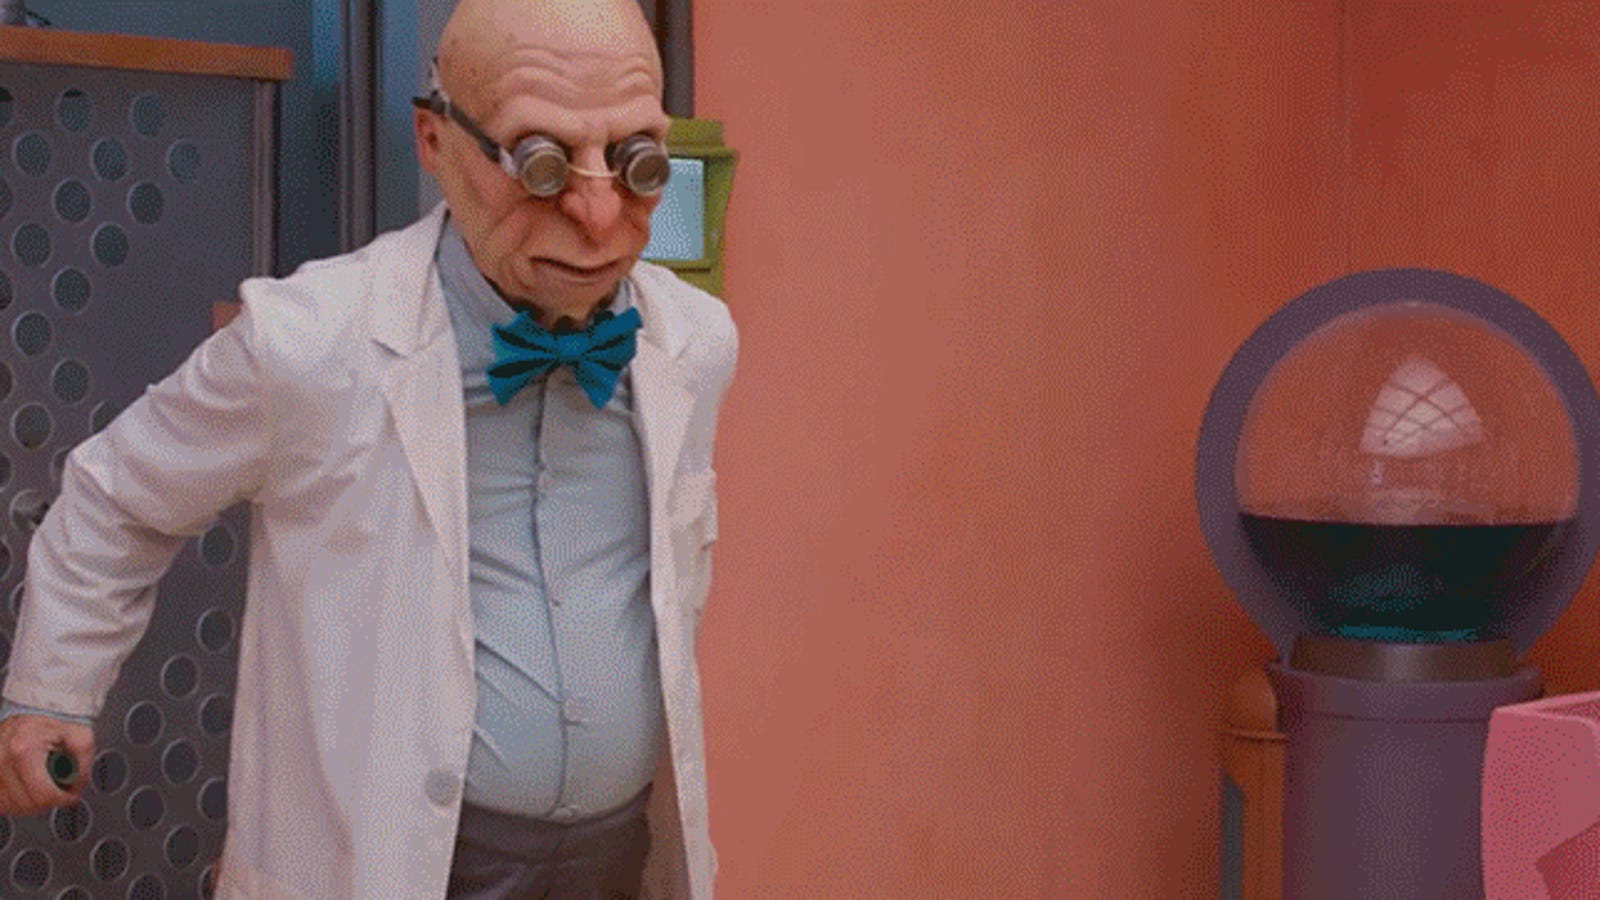 This Live-Action Futurama Fan Film Is Both Incredibly Impressive and Creepy